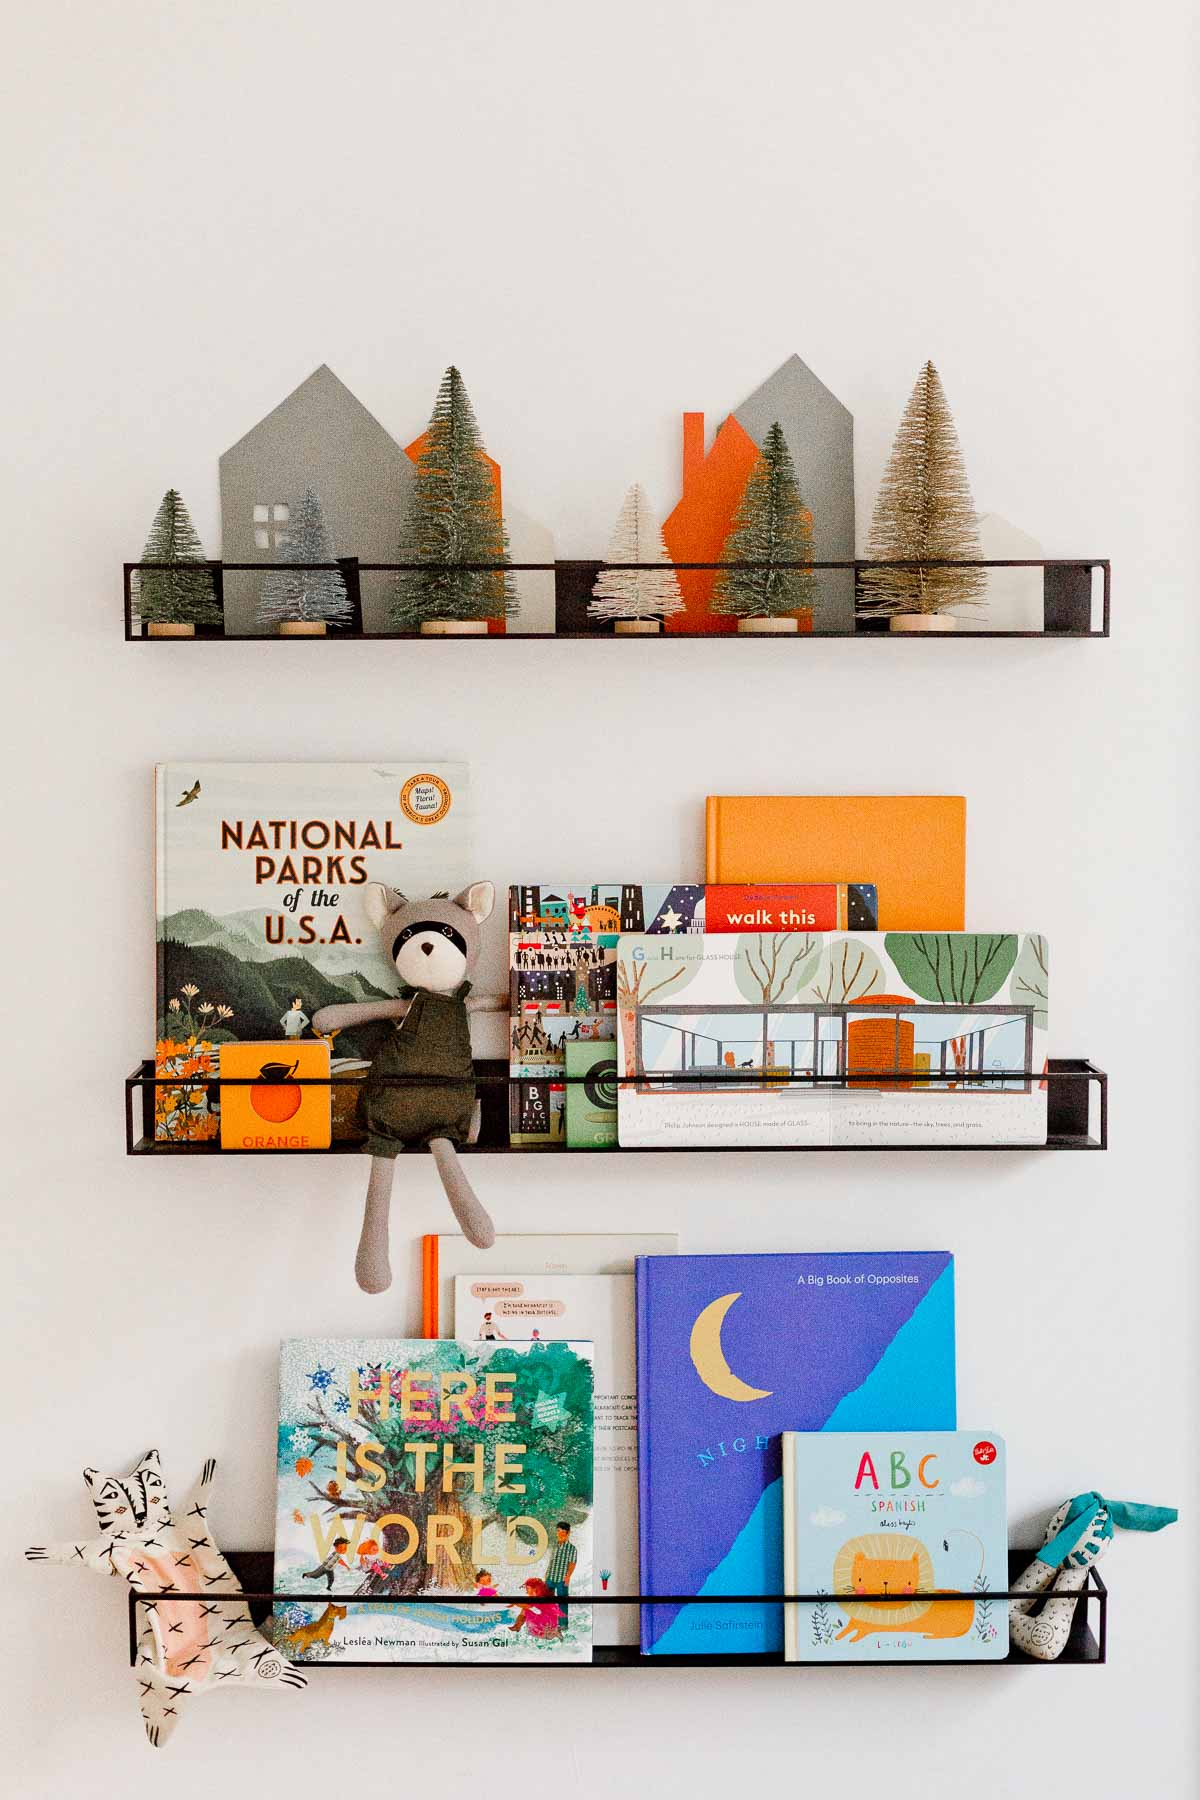 A holiday inspired bookshelf for kids. The DIY paper village and bottle brush trees are a cute touch.